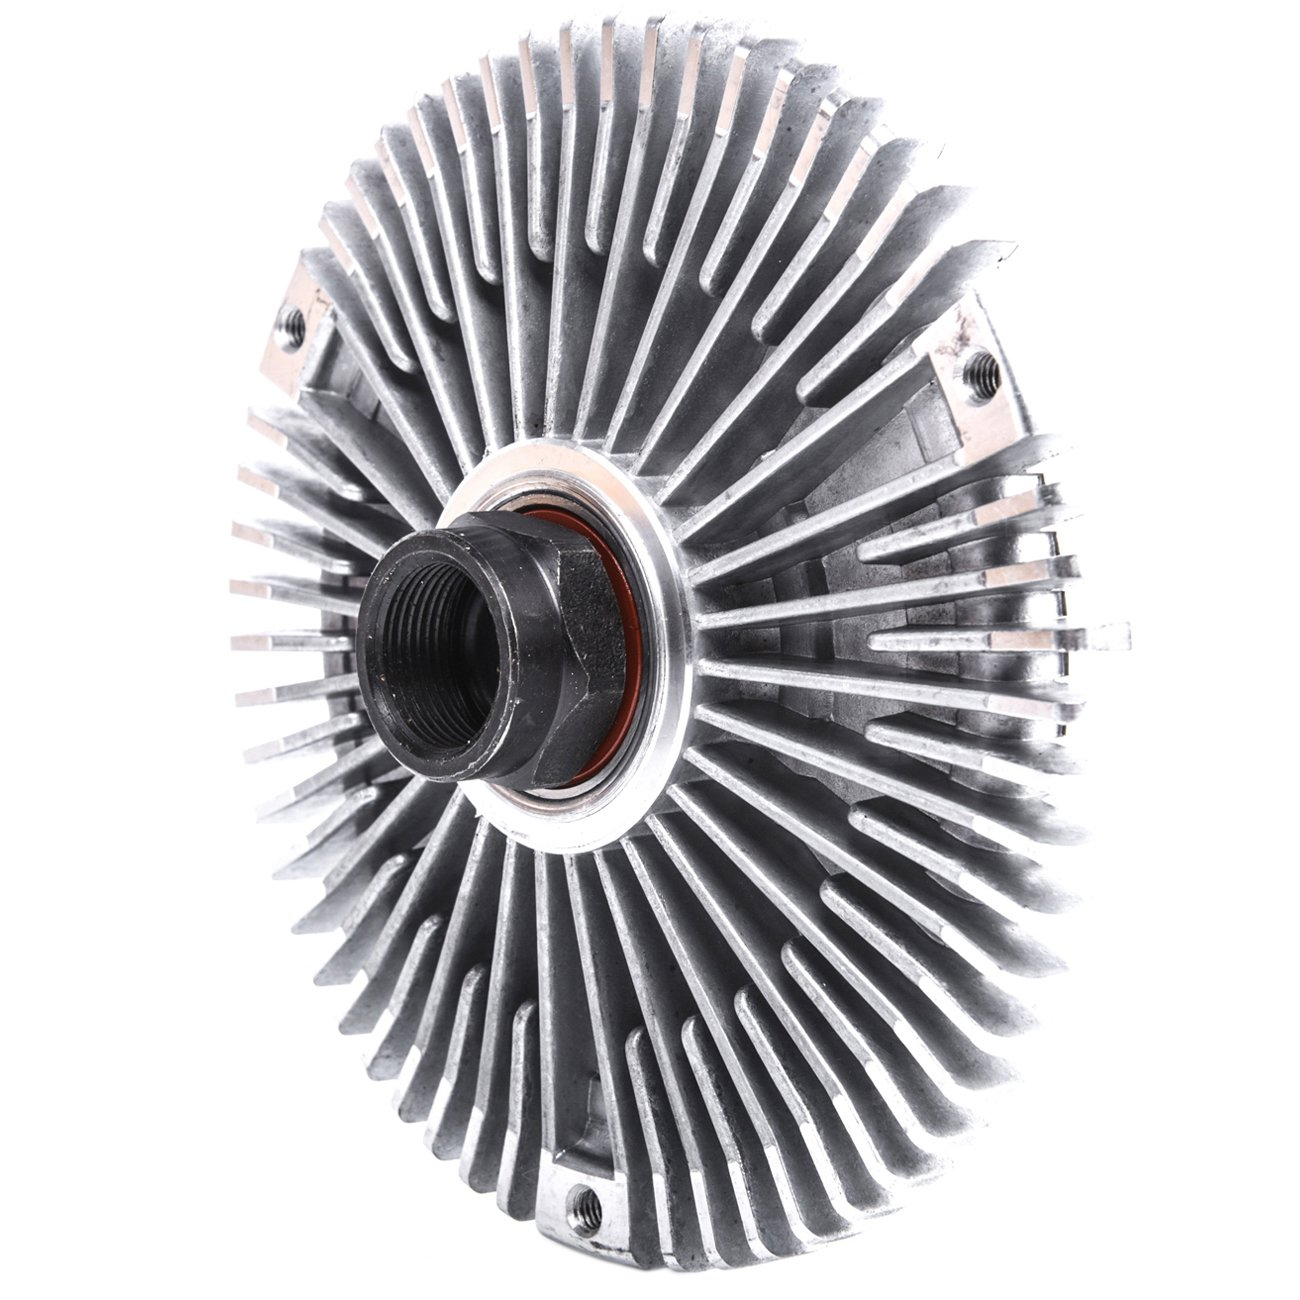 TOPAZ 11527502804 Radiator Cooling Fan Clutch for BMW E39 530i 540i E38 740i 740iL 750iL